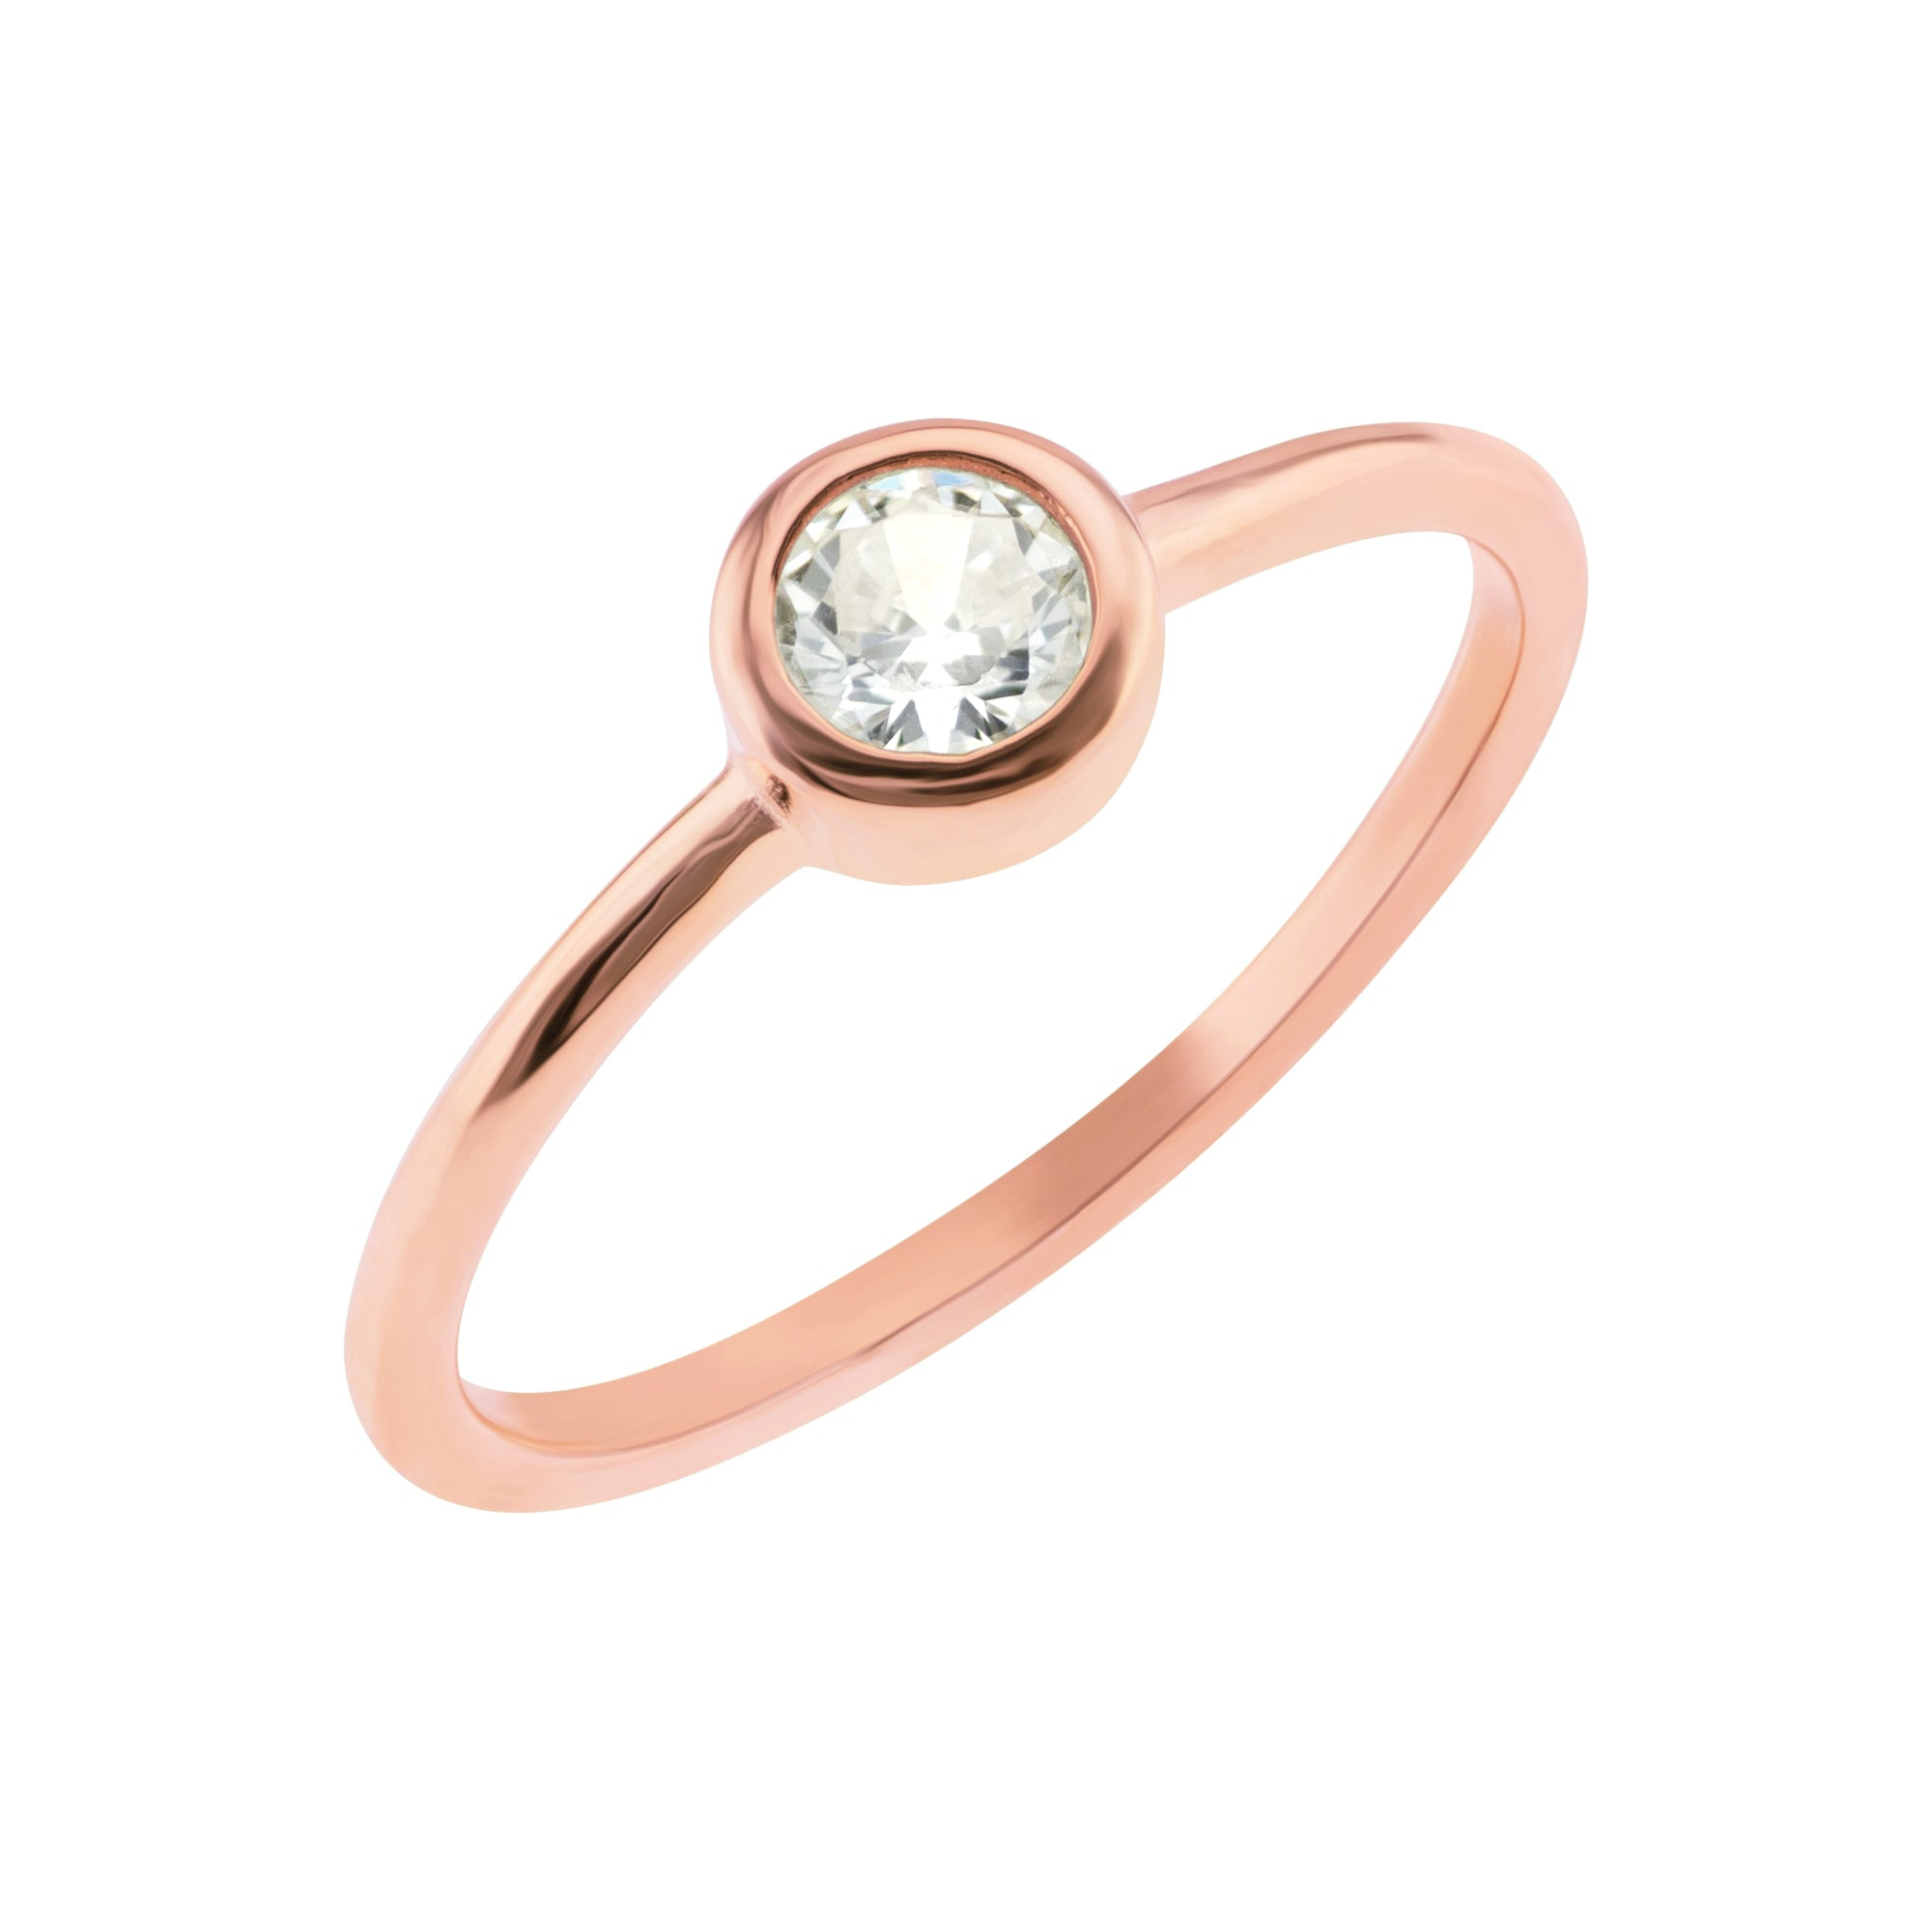 Minimal Solitaire Ring - Rose Gold - Voare Jewelry